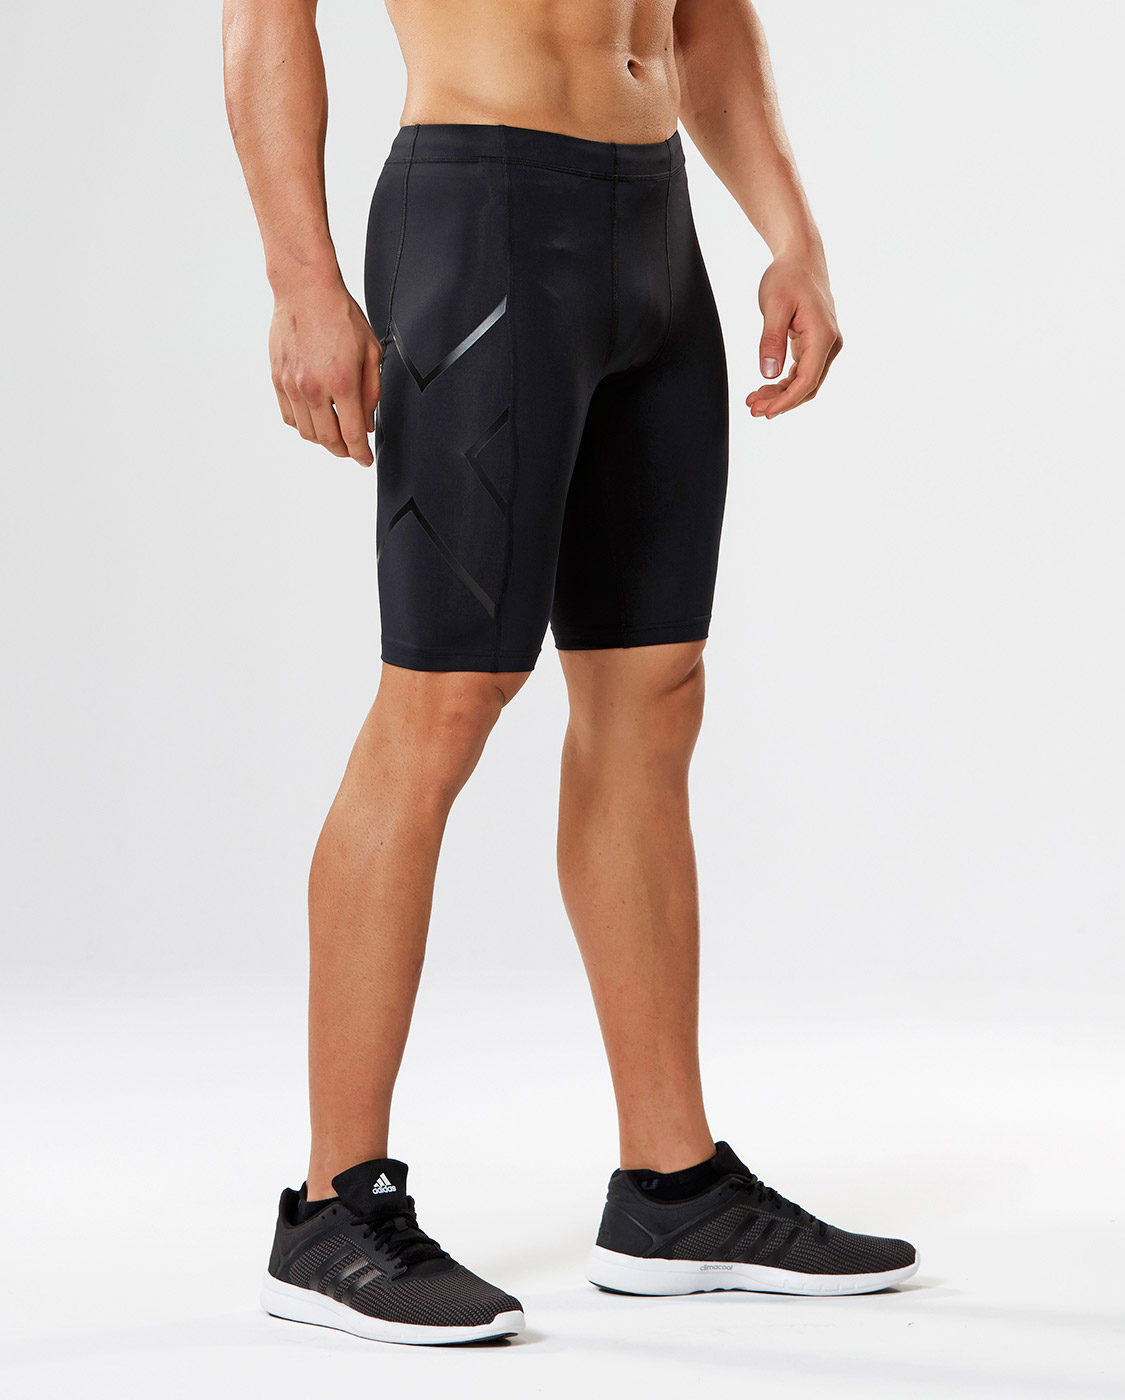 2XU Men's Compression Short's